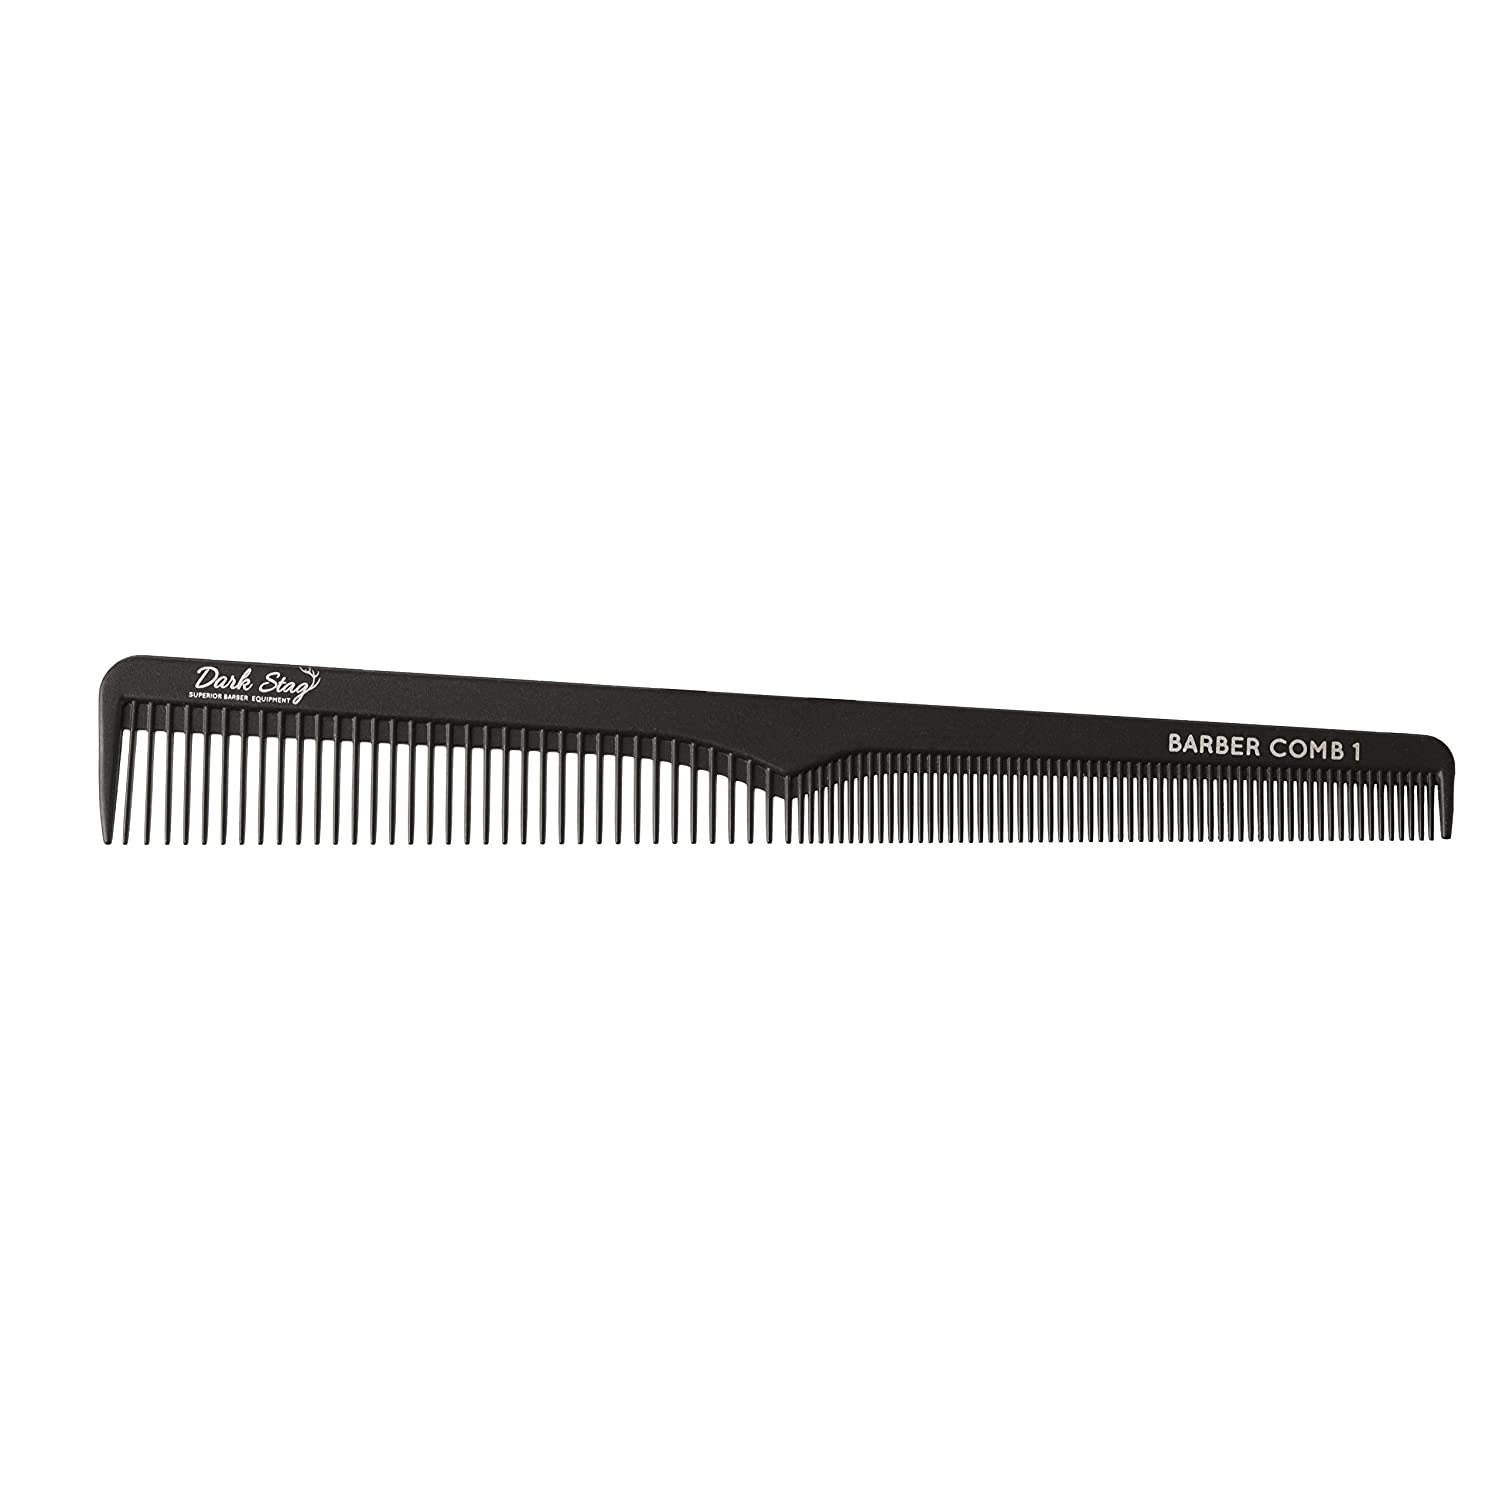 Dark Stag Barber Comb, Number 1 Tapered 4975